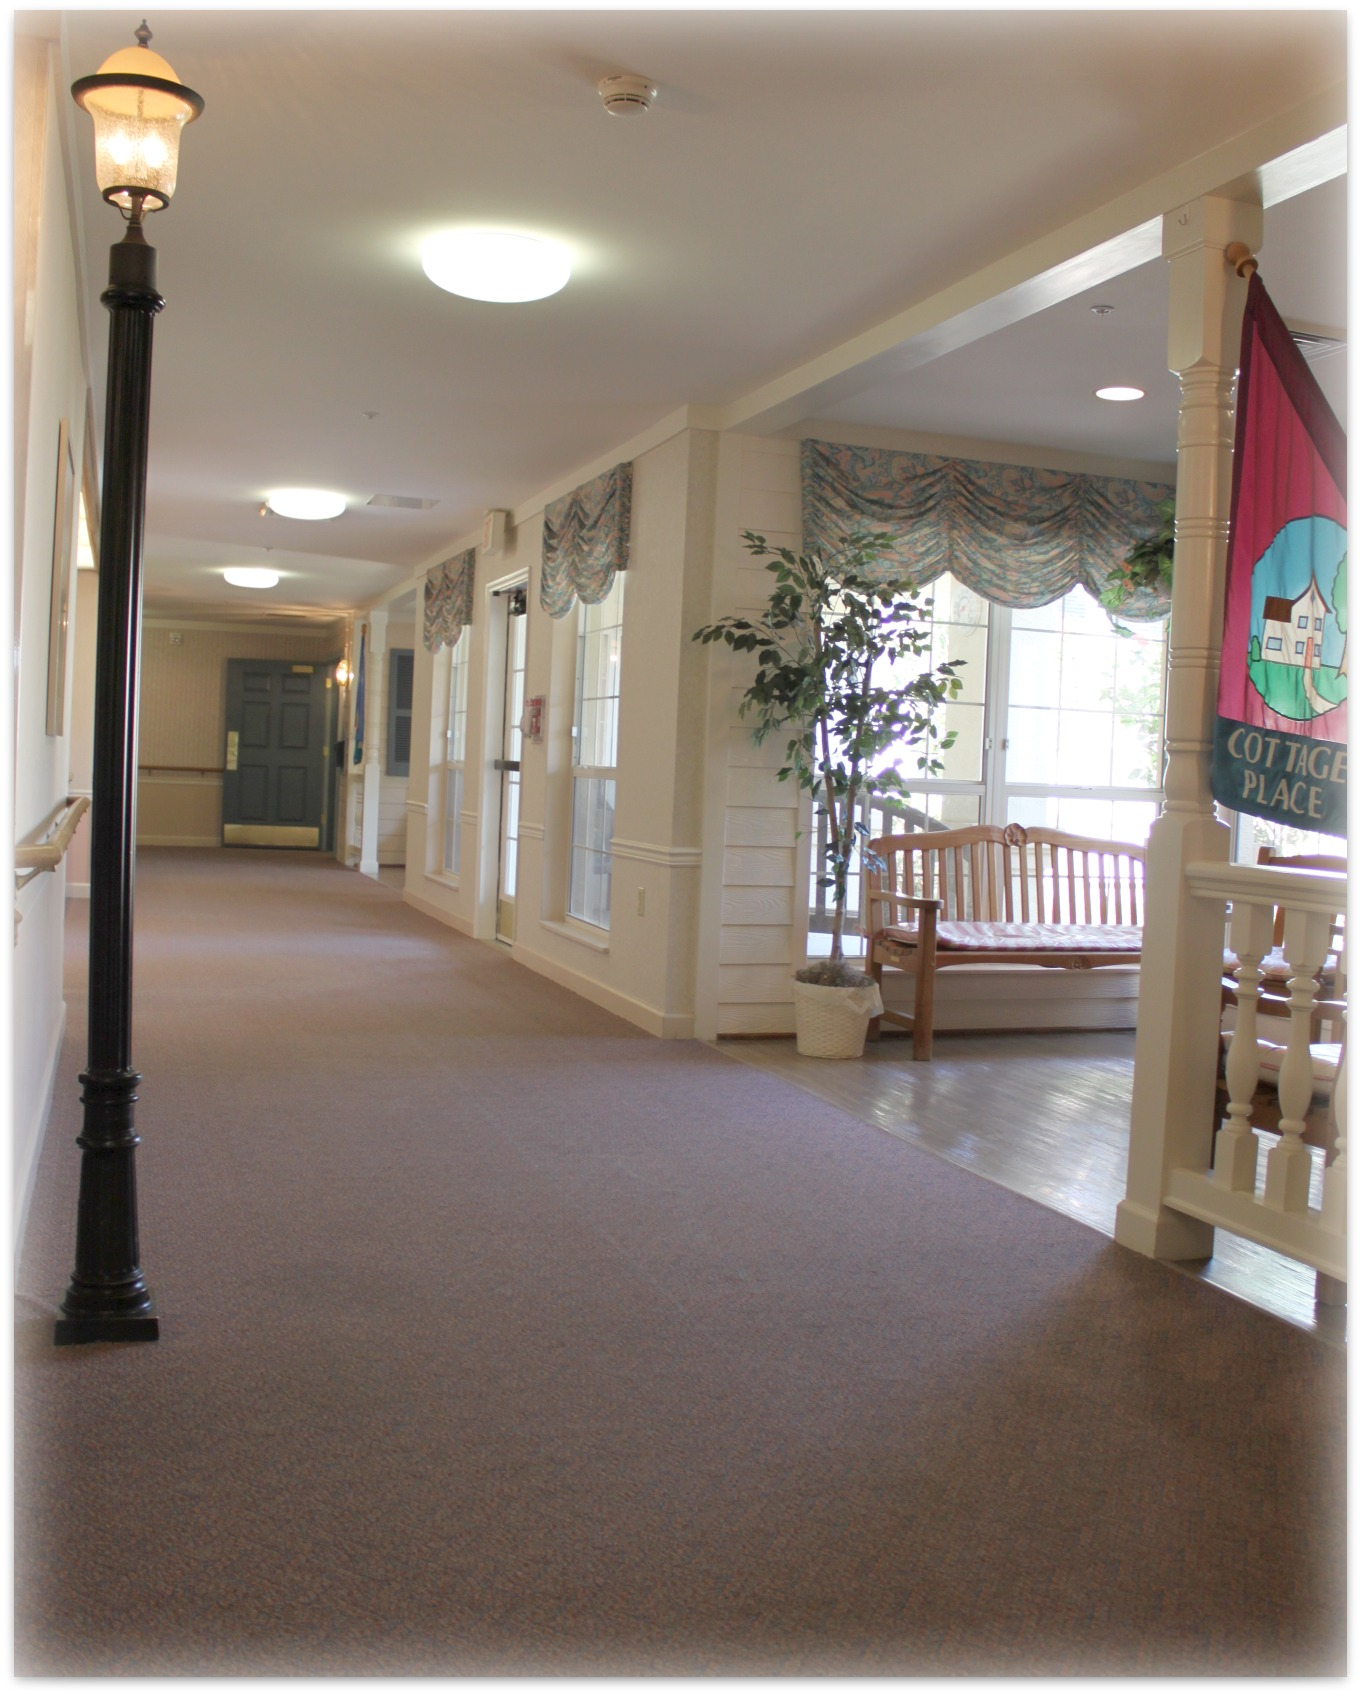 Meadow Mills Assisted Living & Memory Care at Hamden, CT